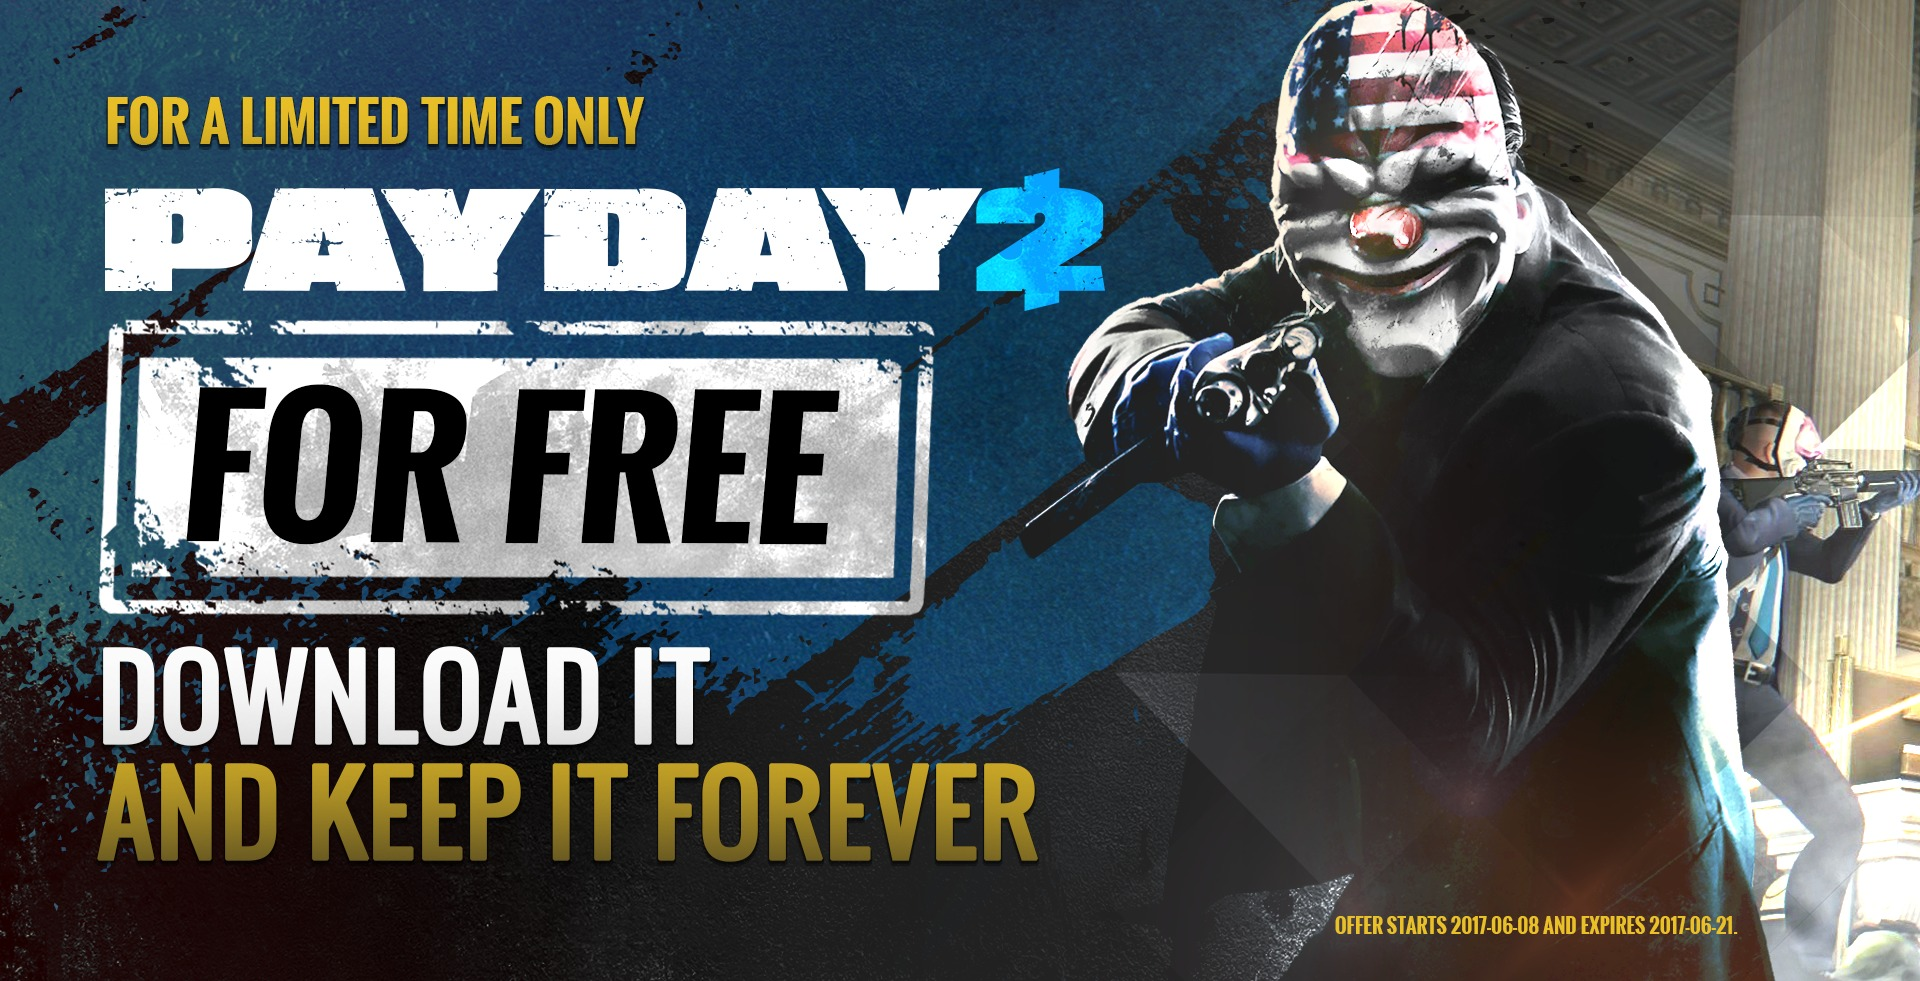 Payday 2 gratuito a tempo limitato su Steam